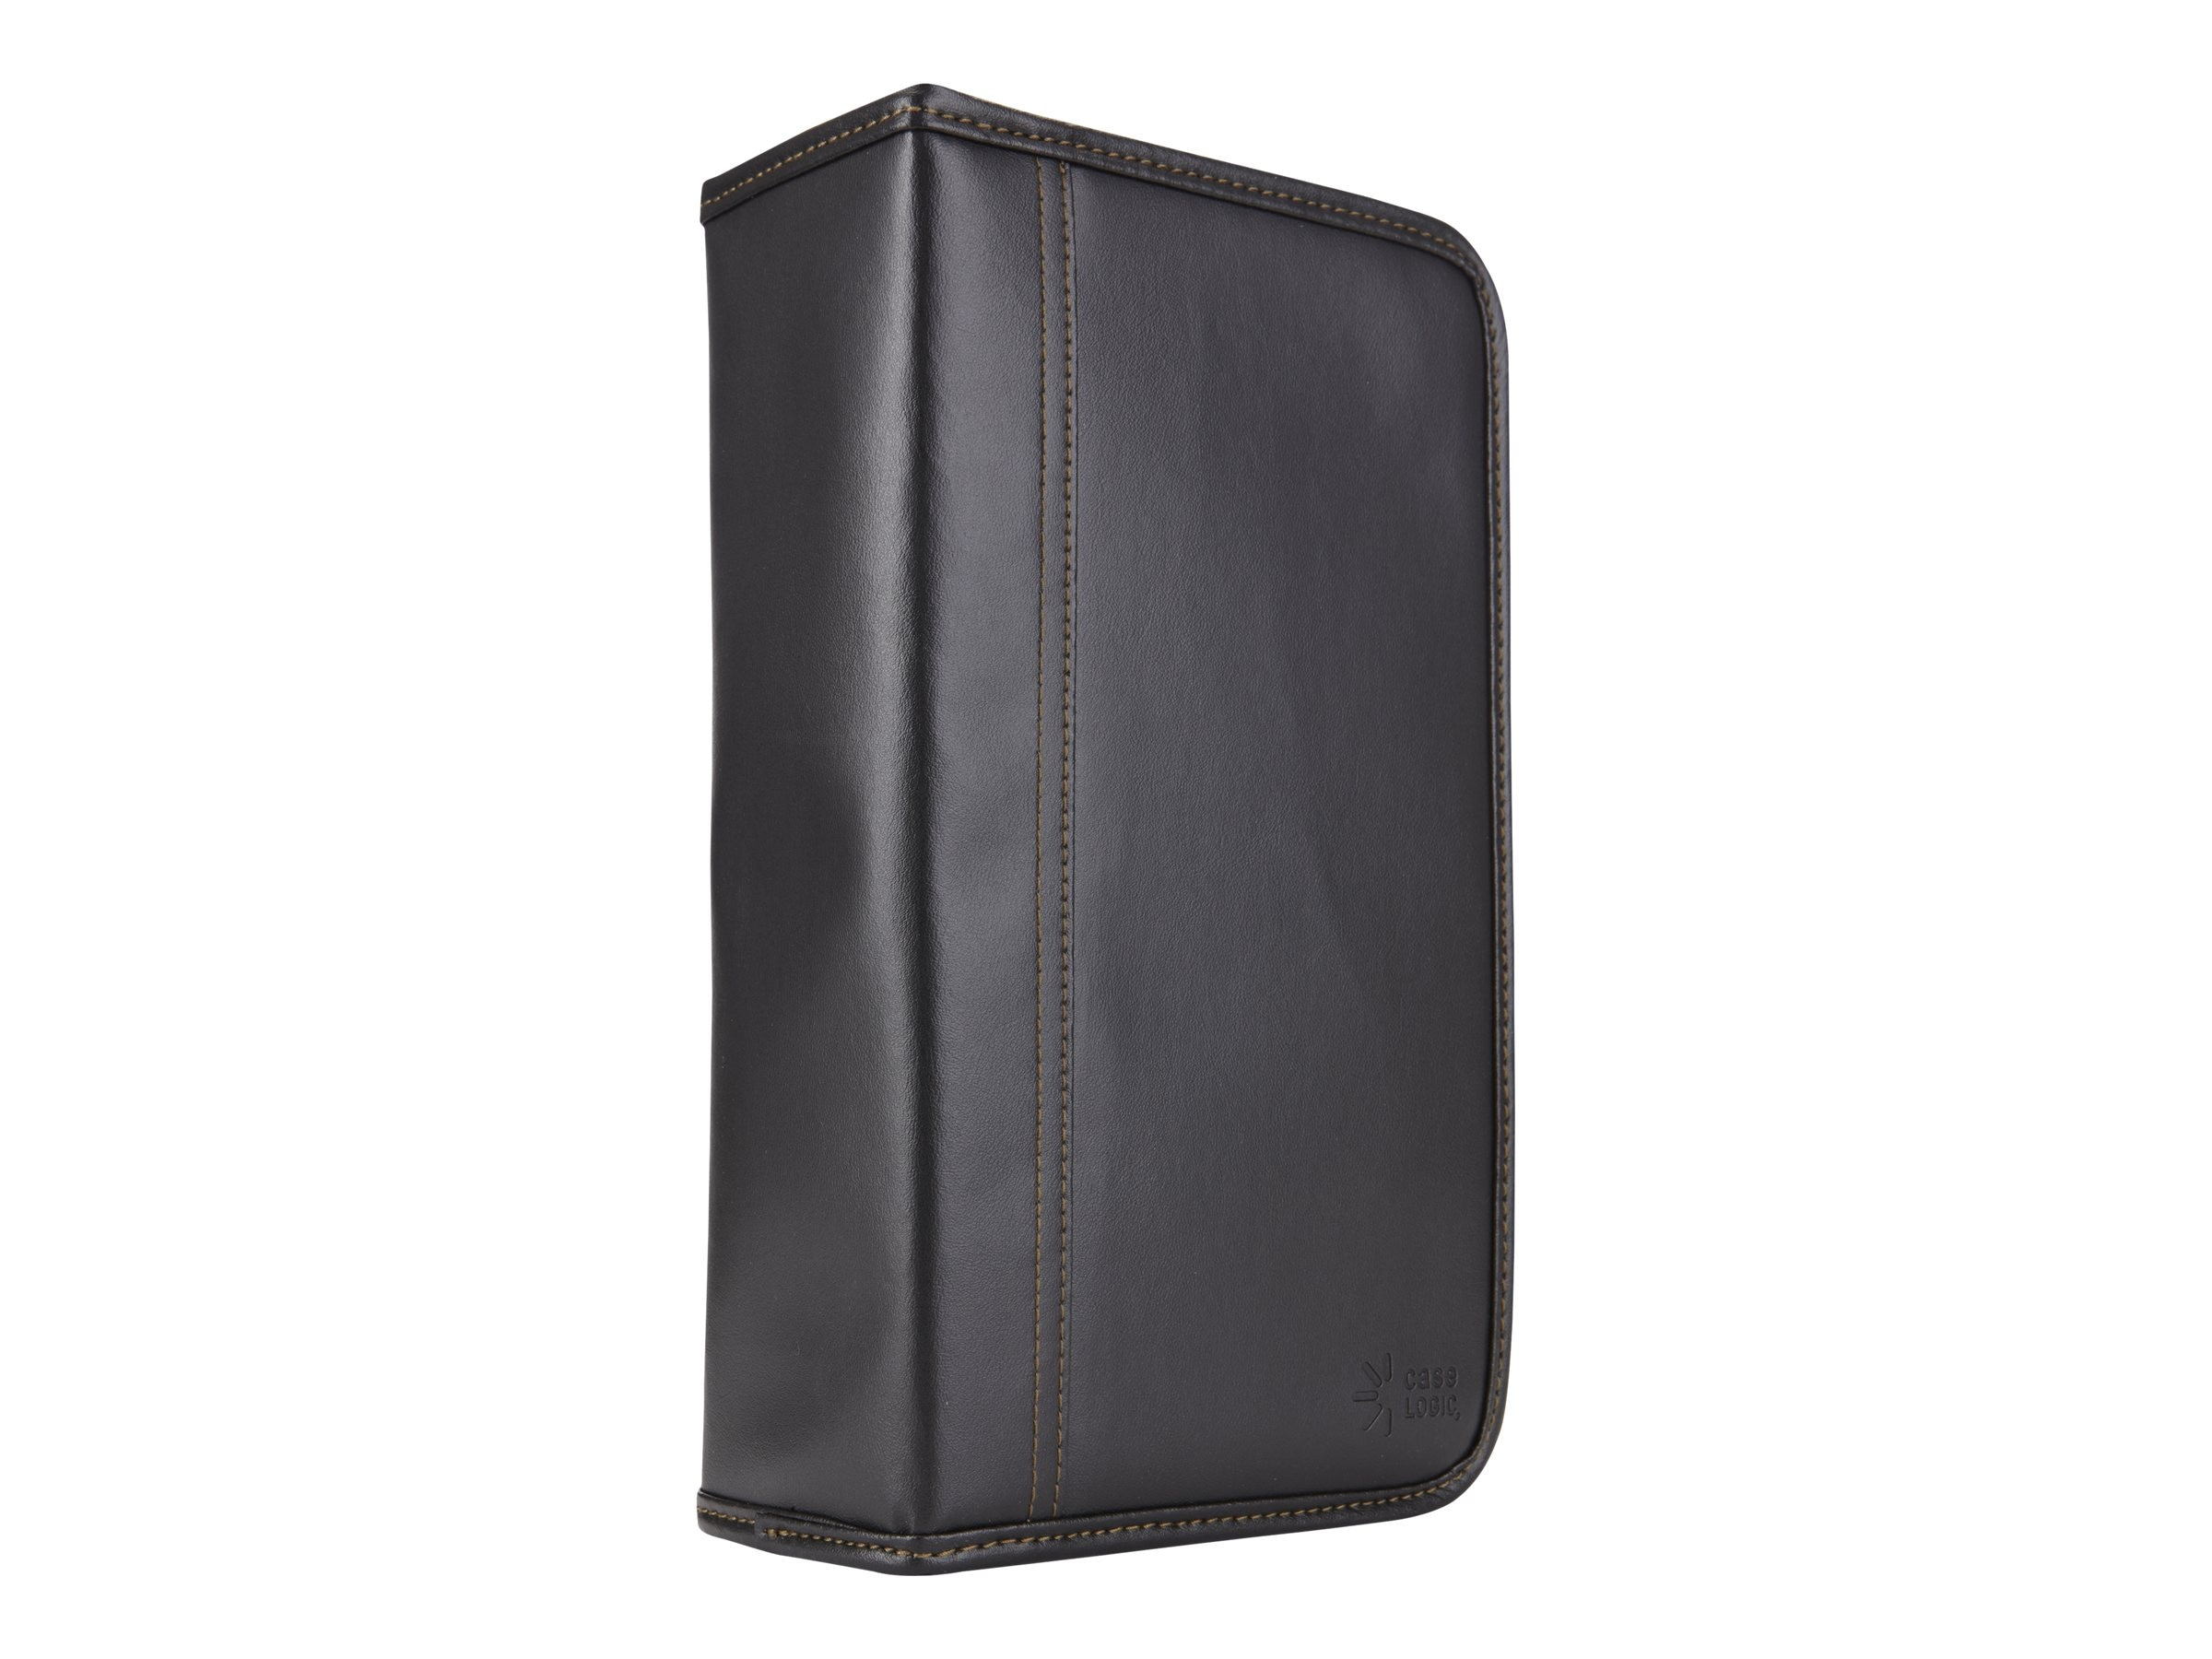 Case Logic CD Wallet; 92 Disc Capacity - Black Koskin